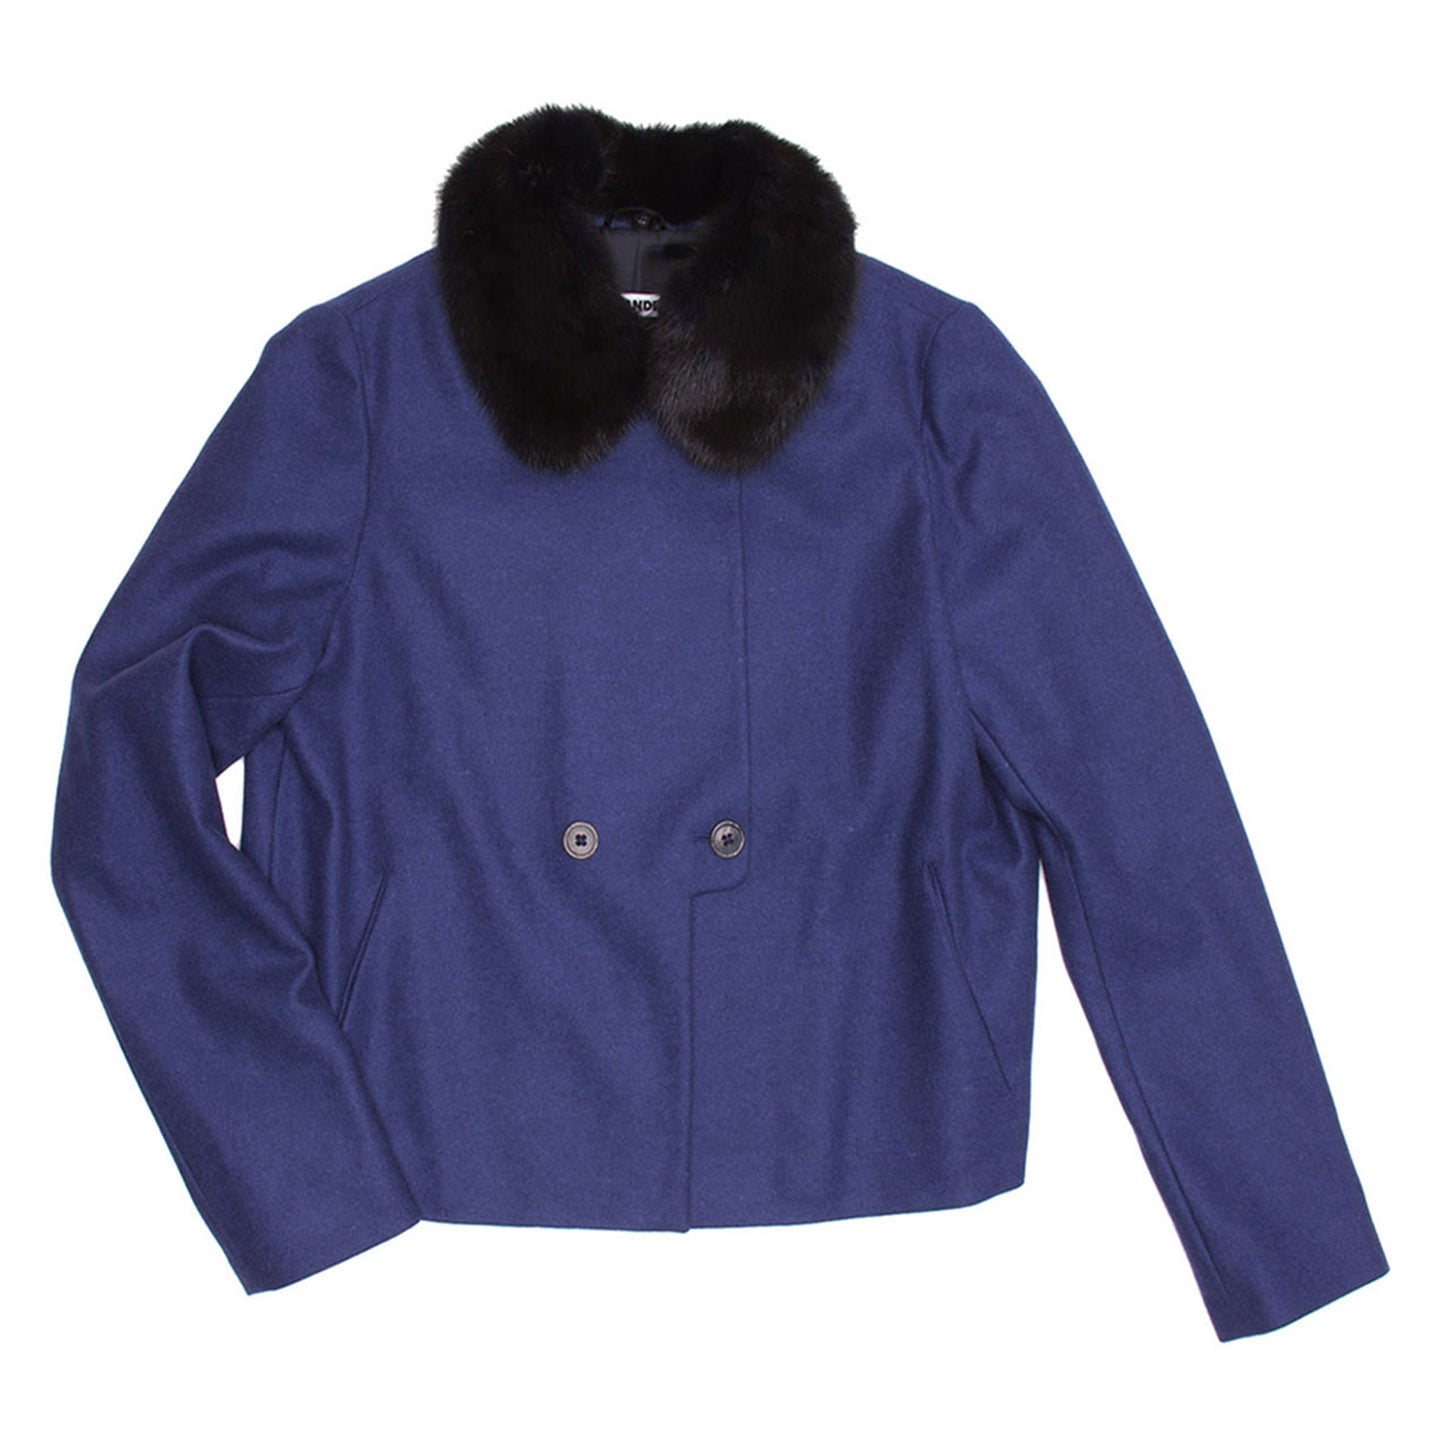 Find an authentic preowned Jil Sander Blue Wool & Fur Short Coat, size 44 (Italian) at BunnyJack, where a portion of every sale goes to charity.